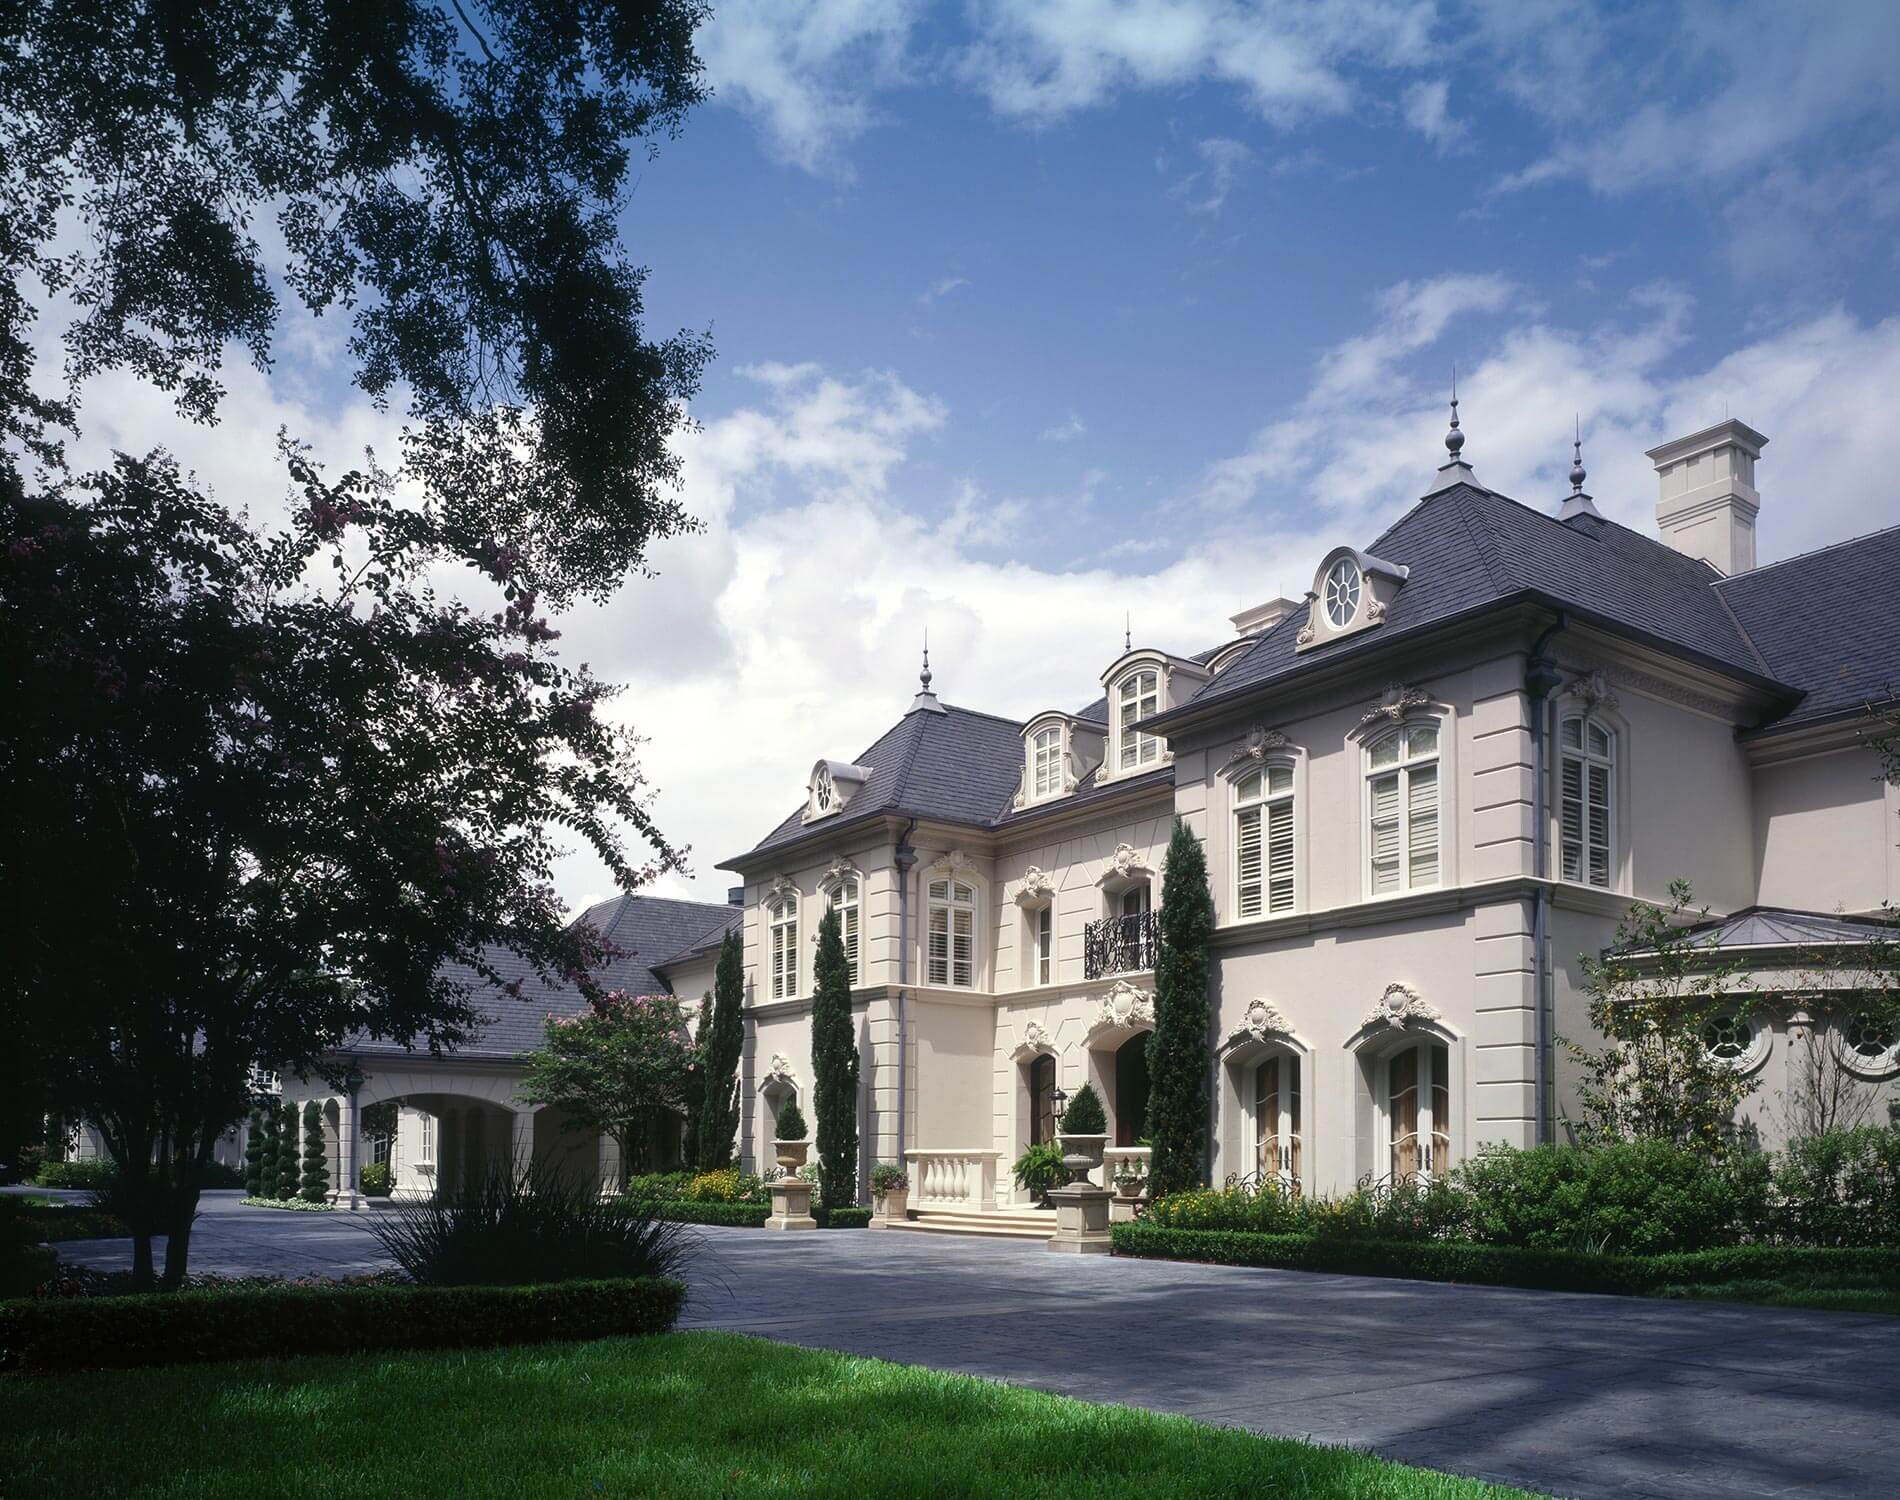 01. French Chateau